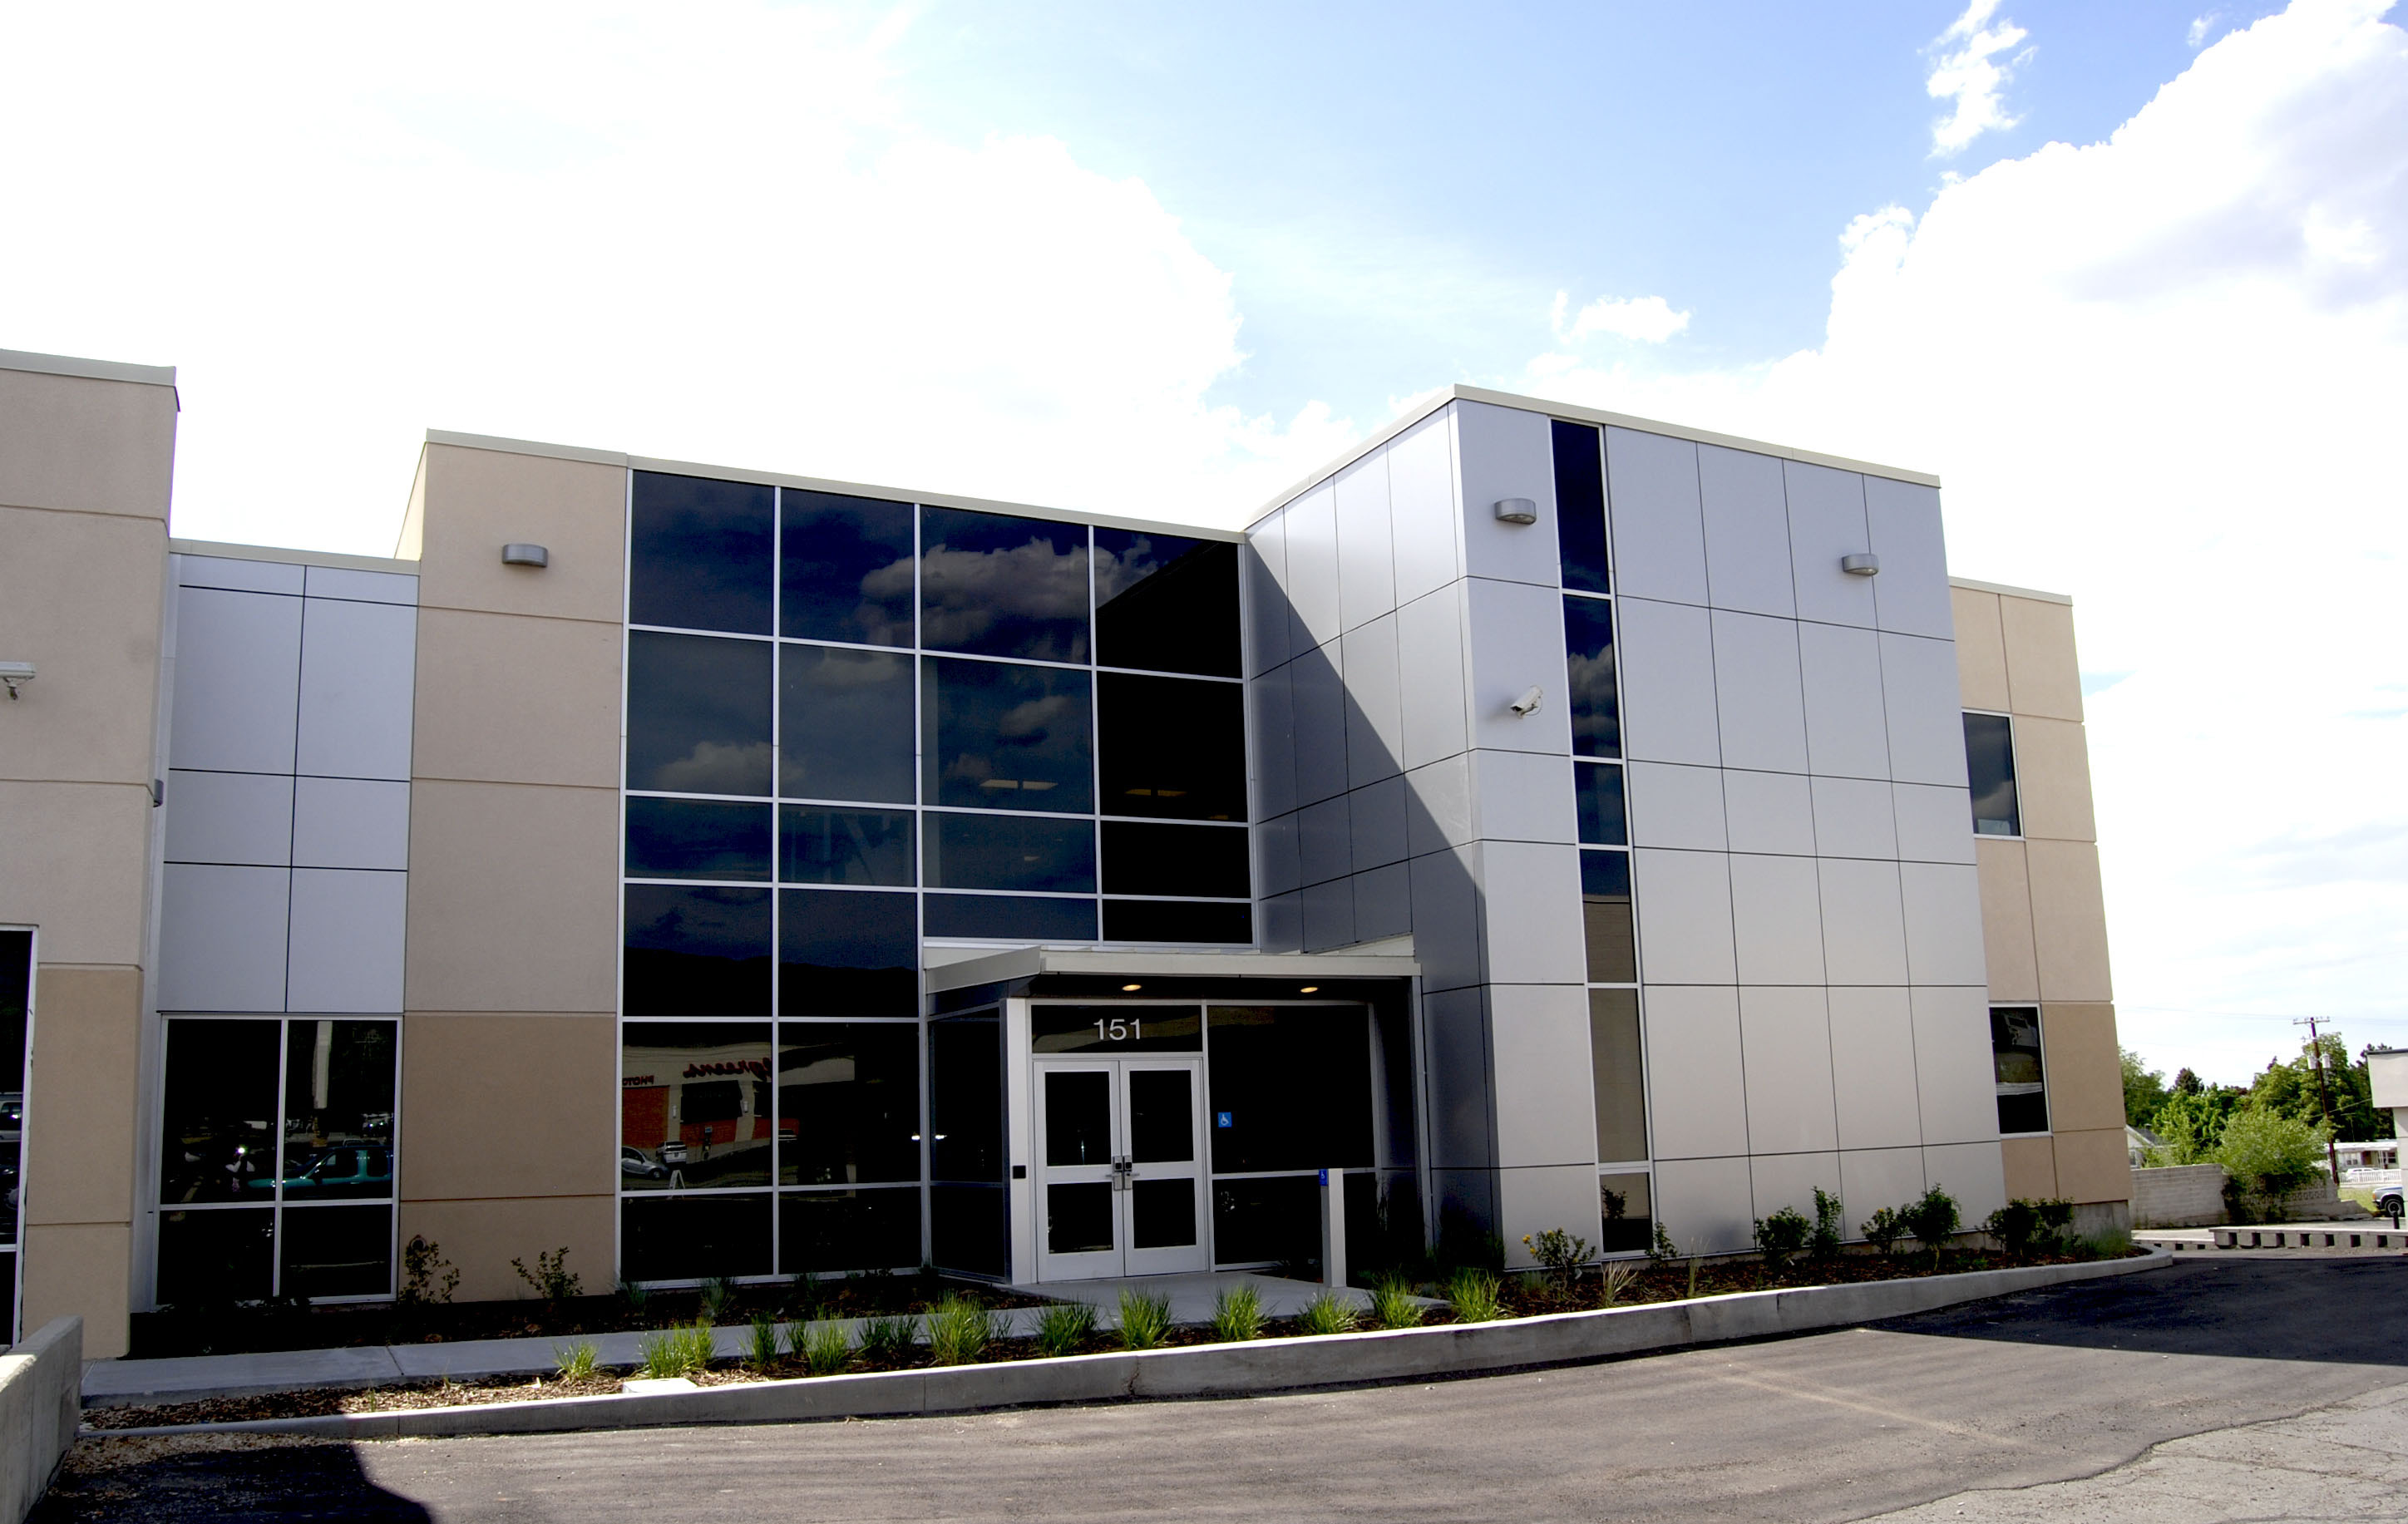 Tooele County Health Building